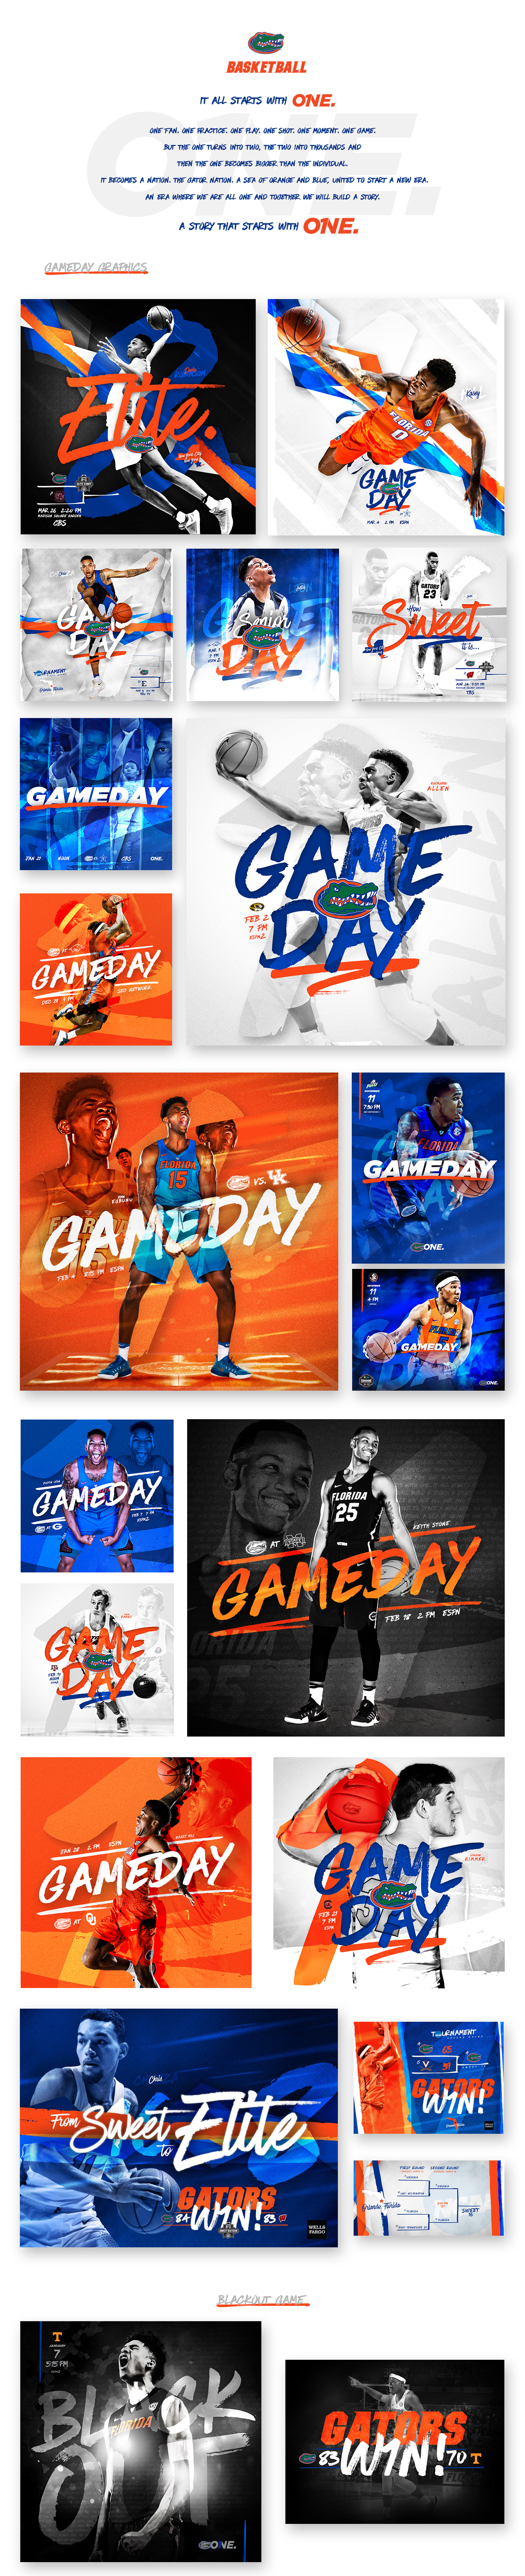 2016-17 Florida Gators Men's Basketball Social Graphics